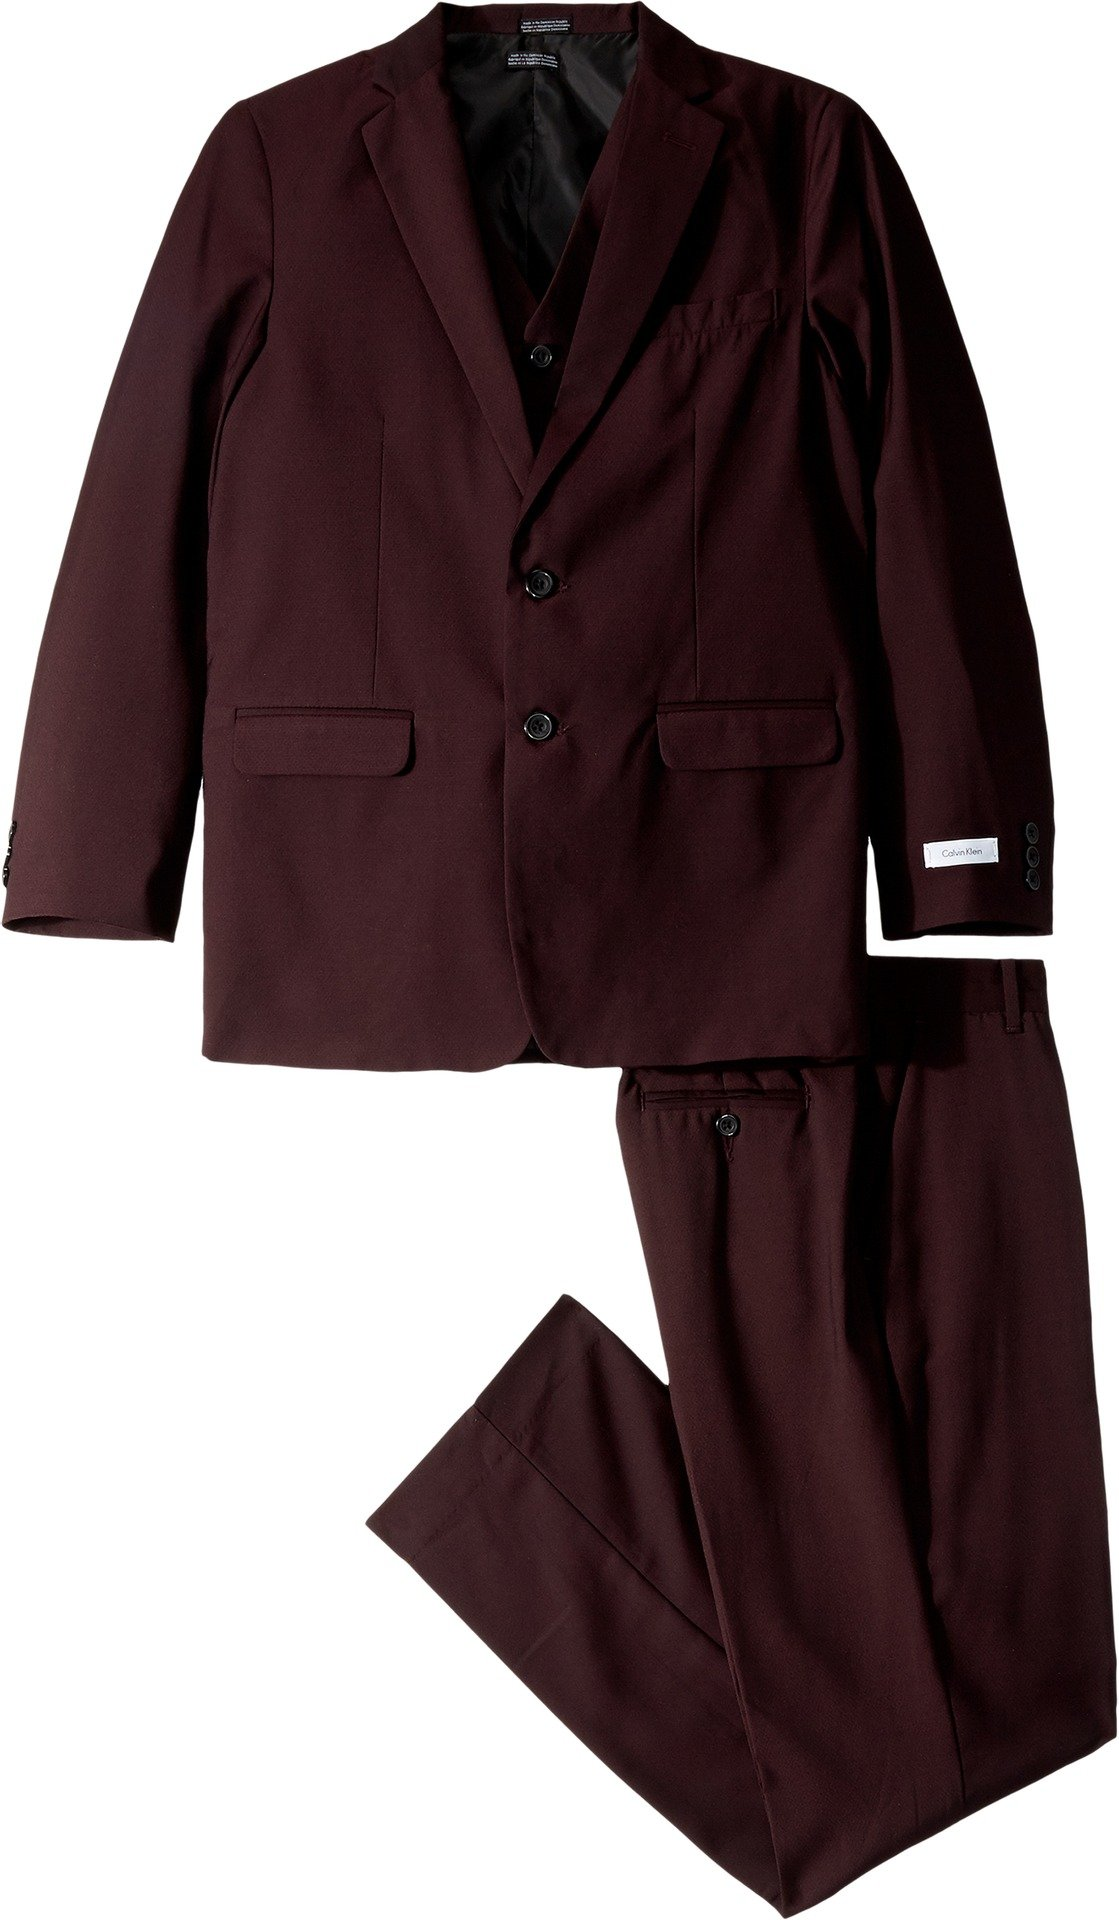 Calvin Klein Big Boys' Shiny Square 3 Piece Suit, Burgundy, 18